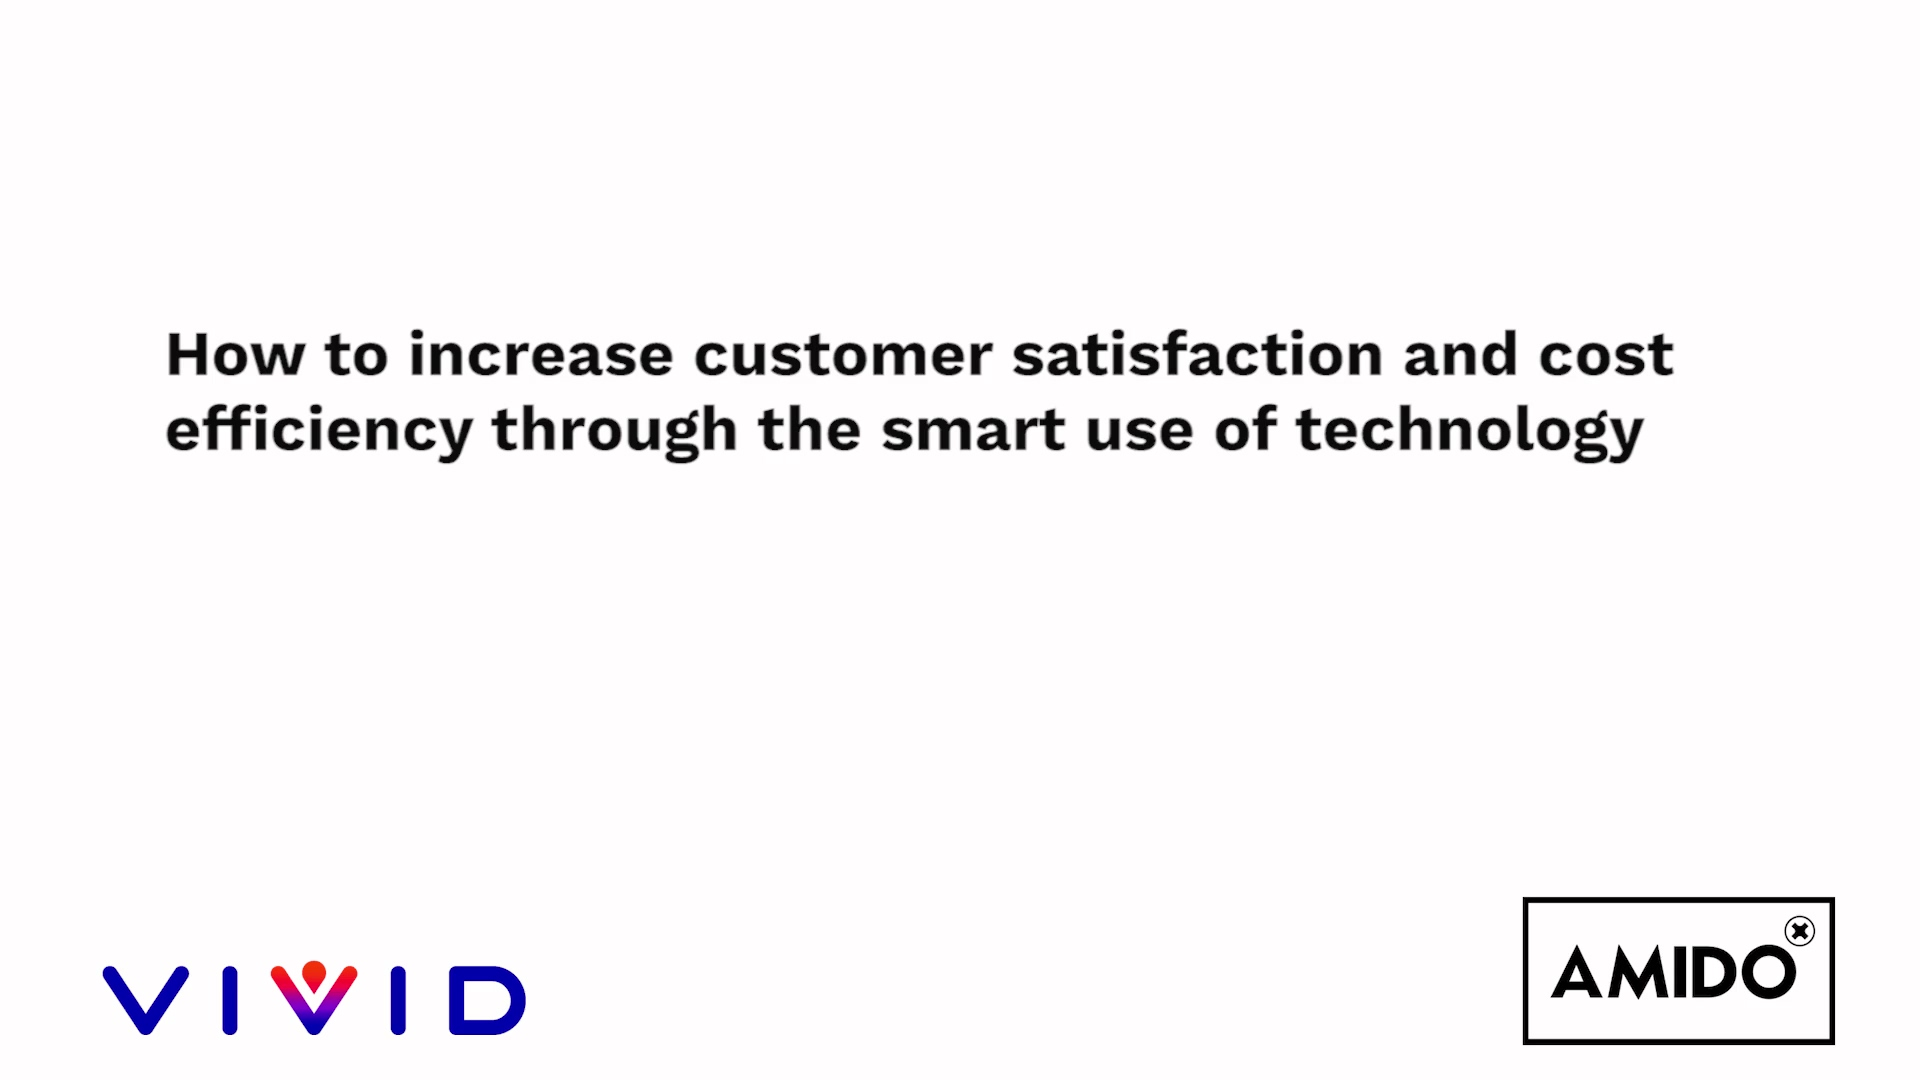 Increasing customer satisfaction through the smart use of technology - Vivid Homes